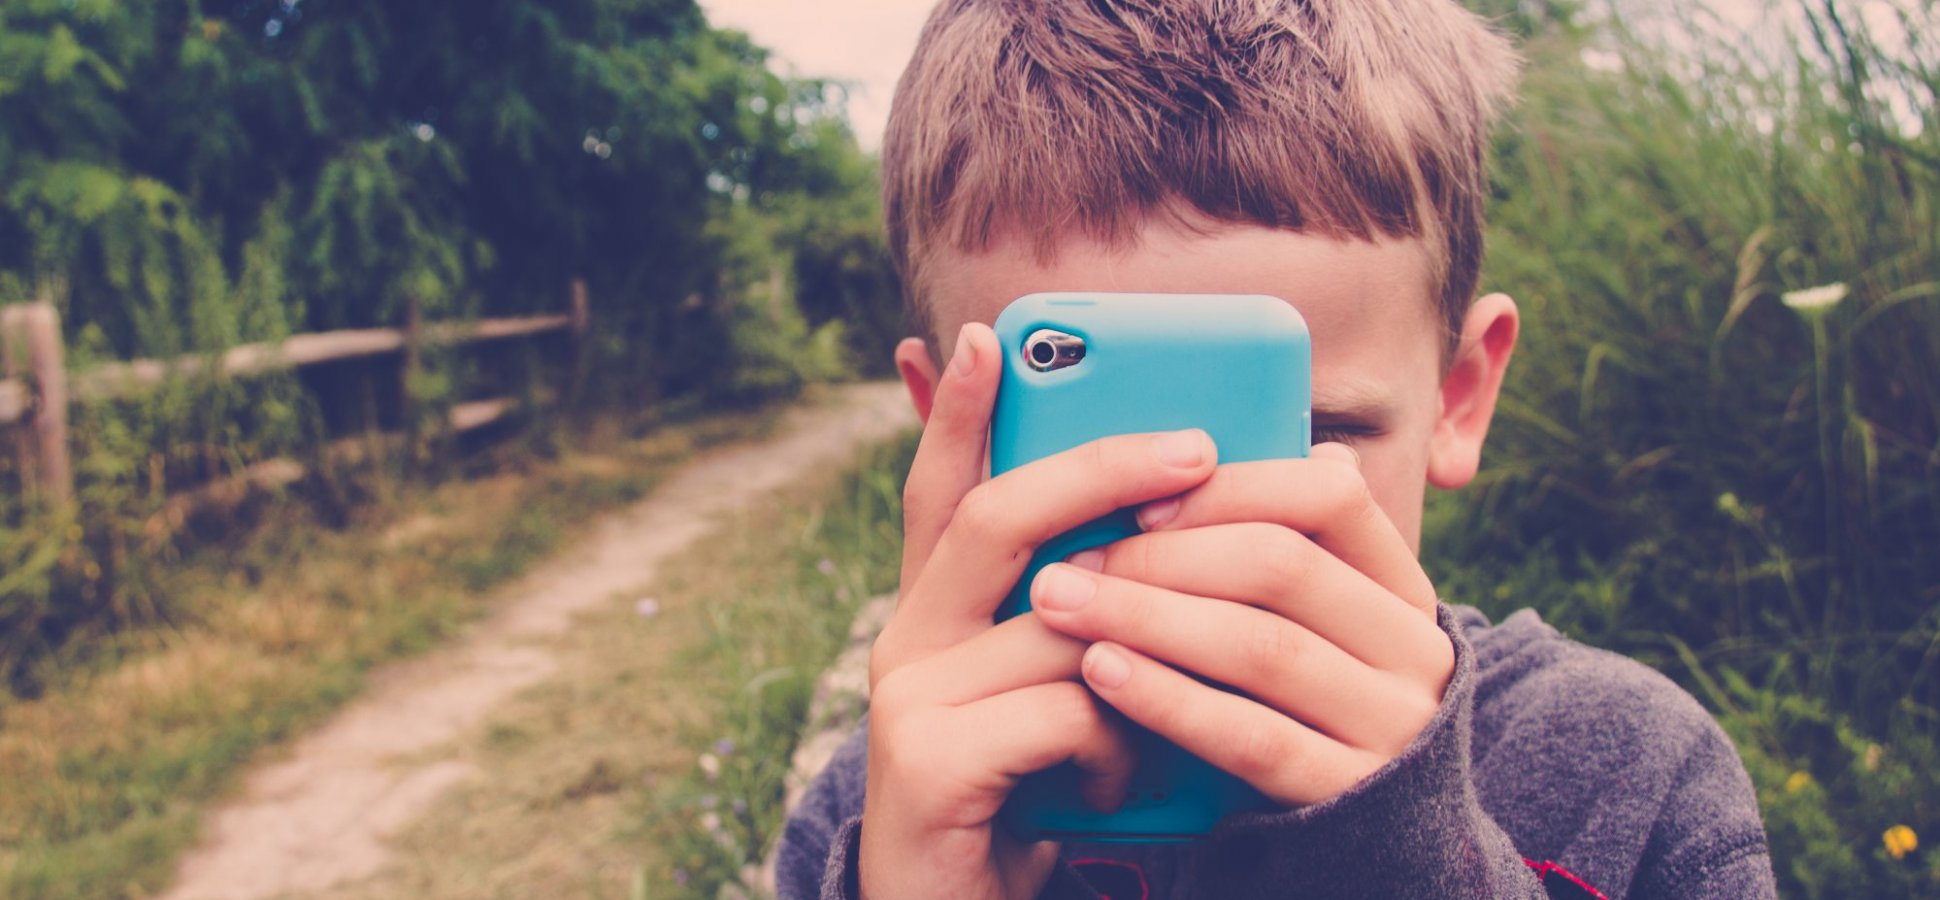 Are iPhones Harming our Kids? Apple Investors Think So. Protect Your Kids With These 5 Easy Tips